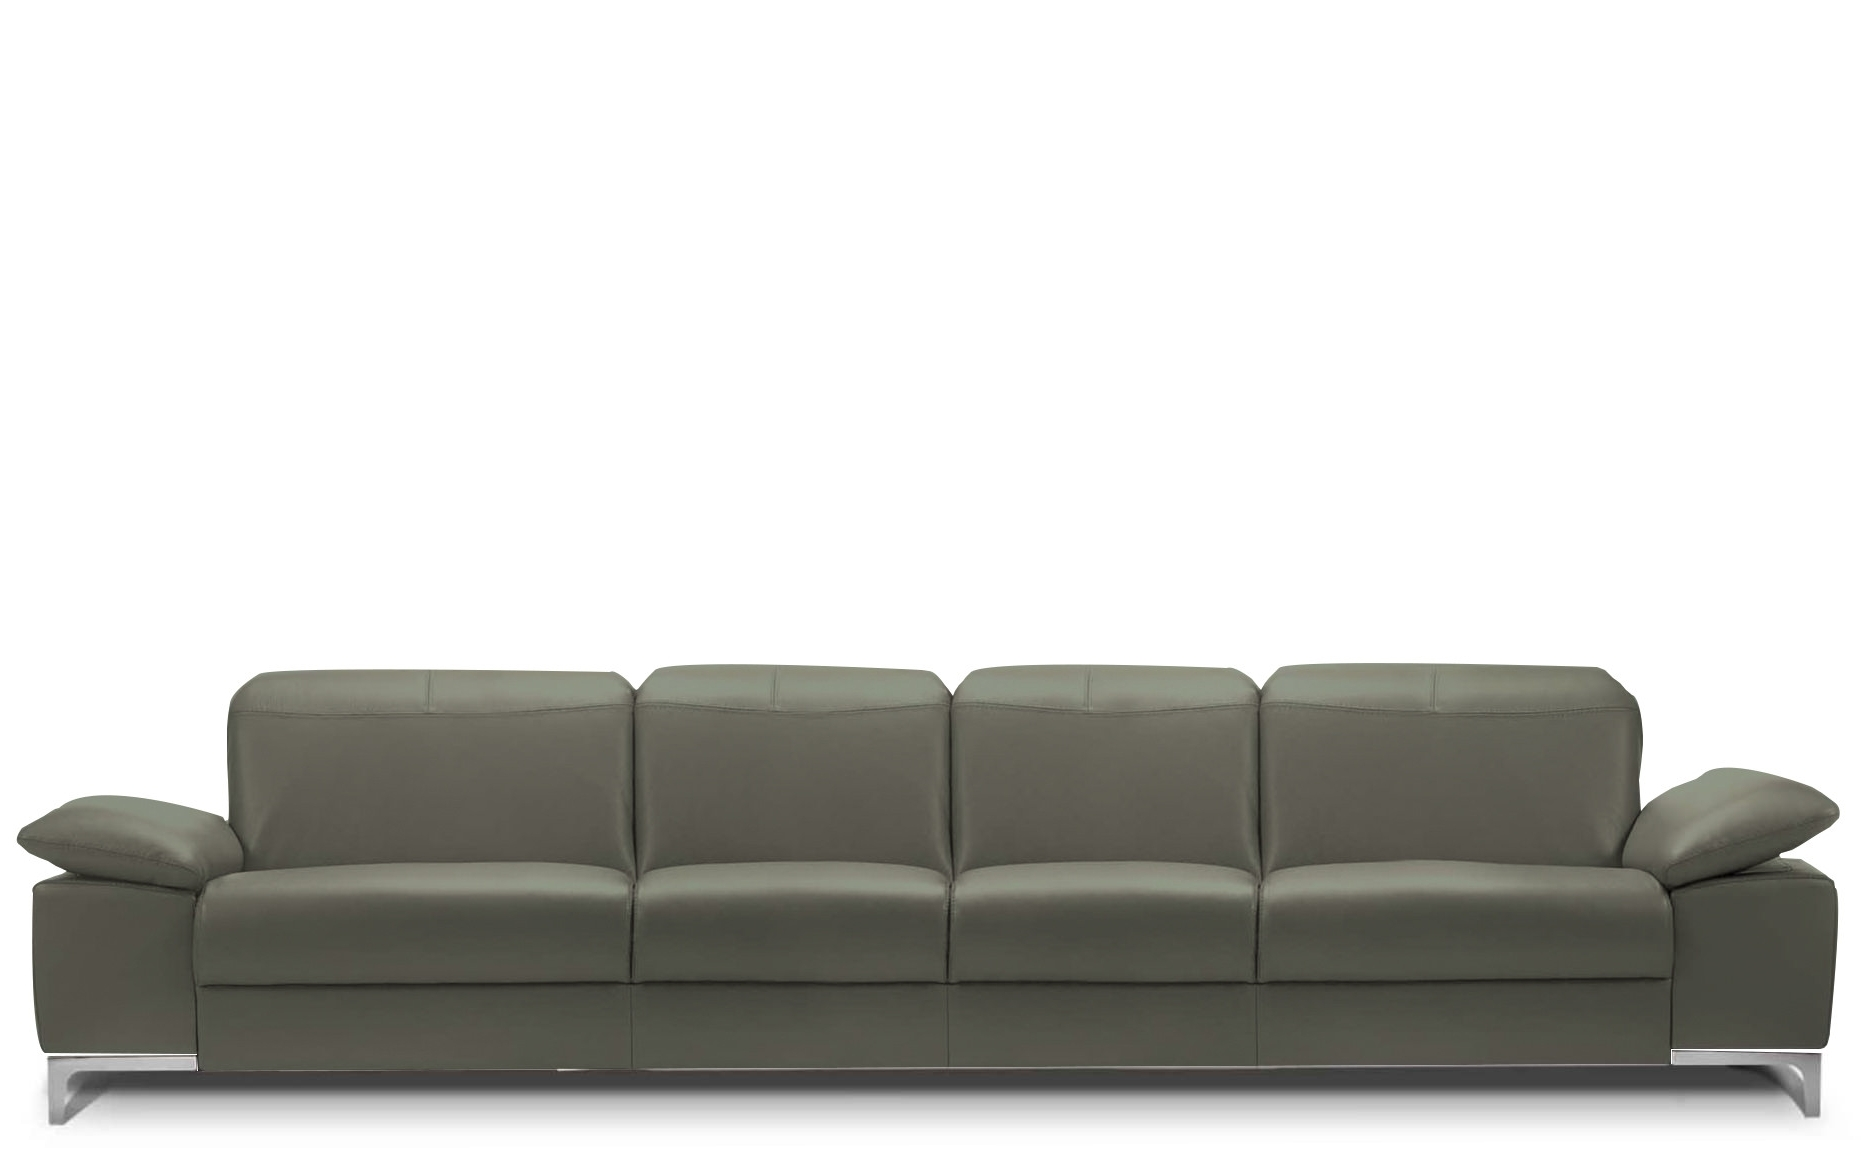 Rom Chronos 4 Seater Leather Sofa (View 11 of 15)